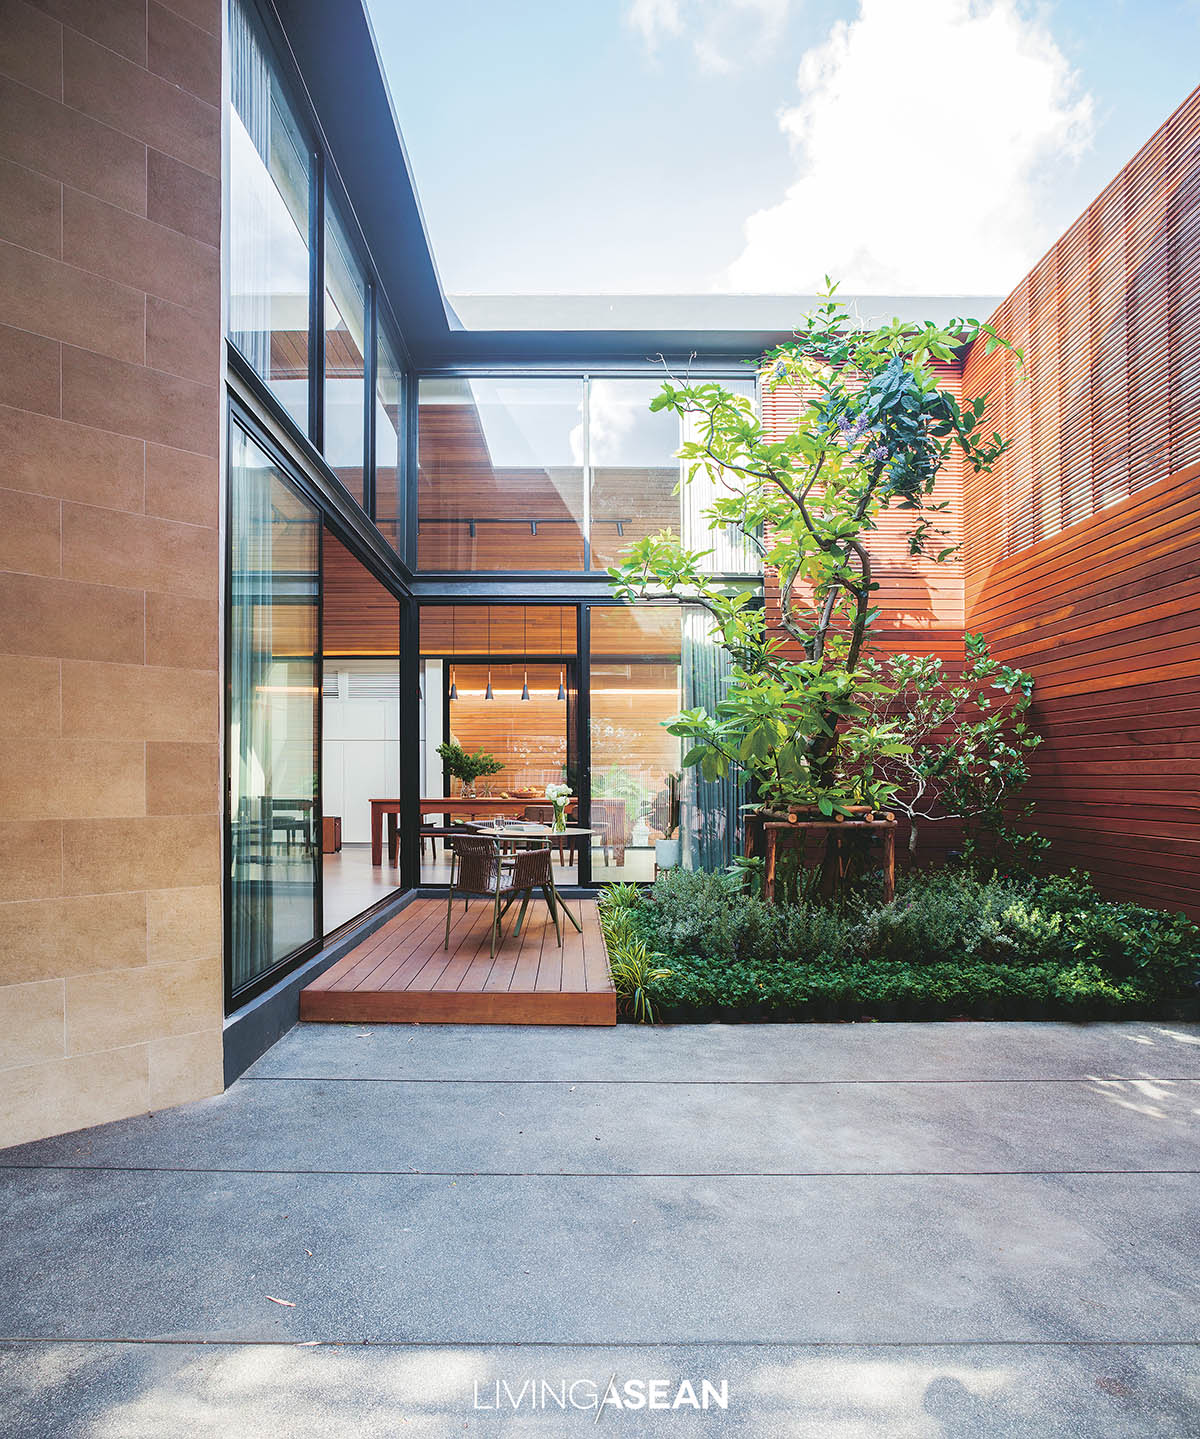 Beyond the carport, a courtyard lies mostly enclosed by glass walls that let natural light stream into the house's interior. At the center, a thriving lettuce tree (Pisonia grandis R. Br.) adds a decorative touch to the home.